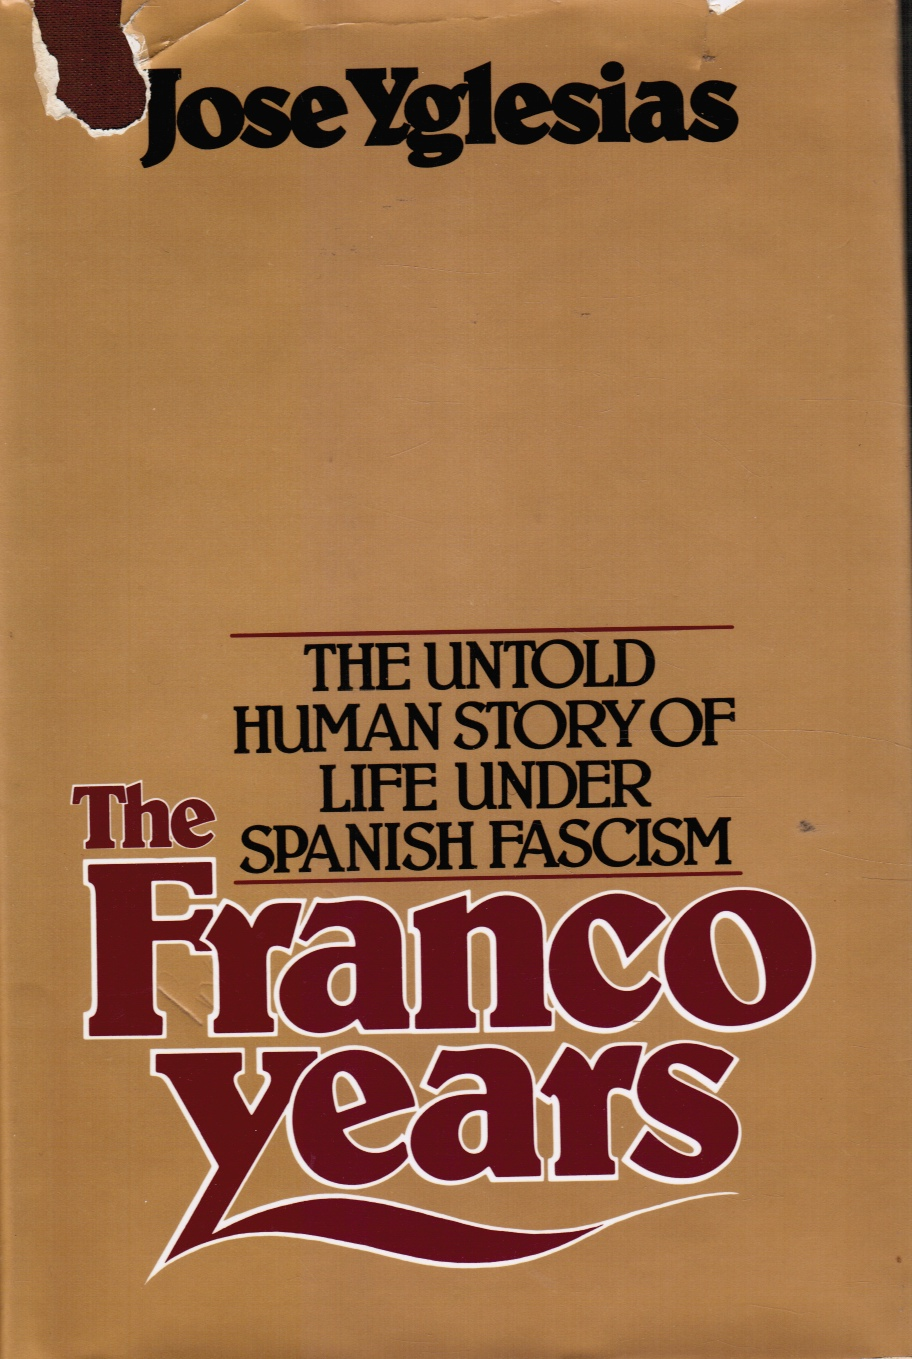 Image for The Franco years